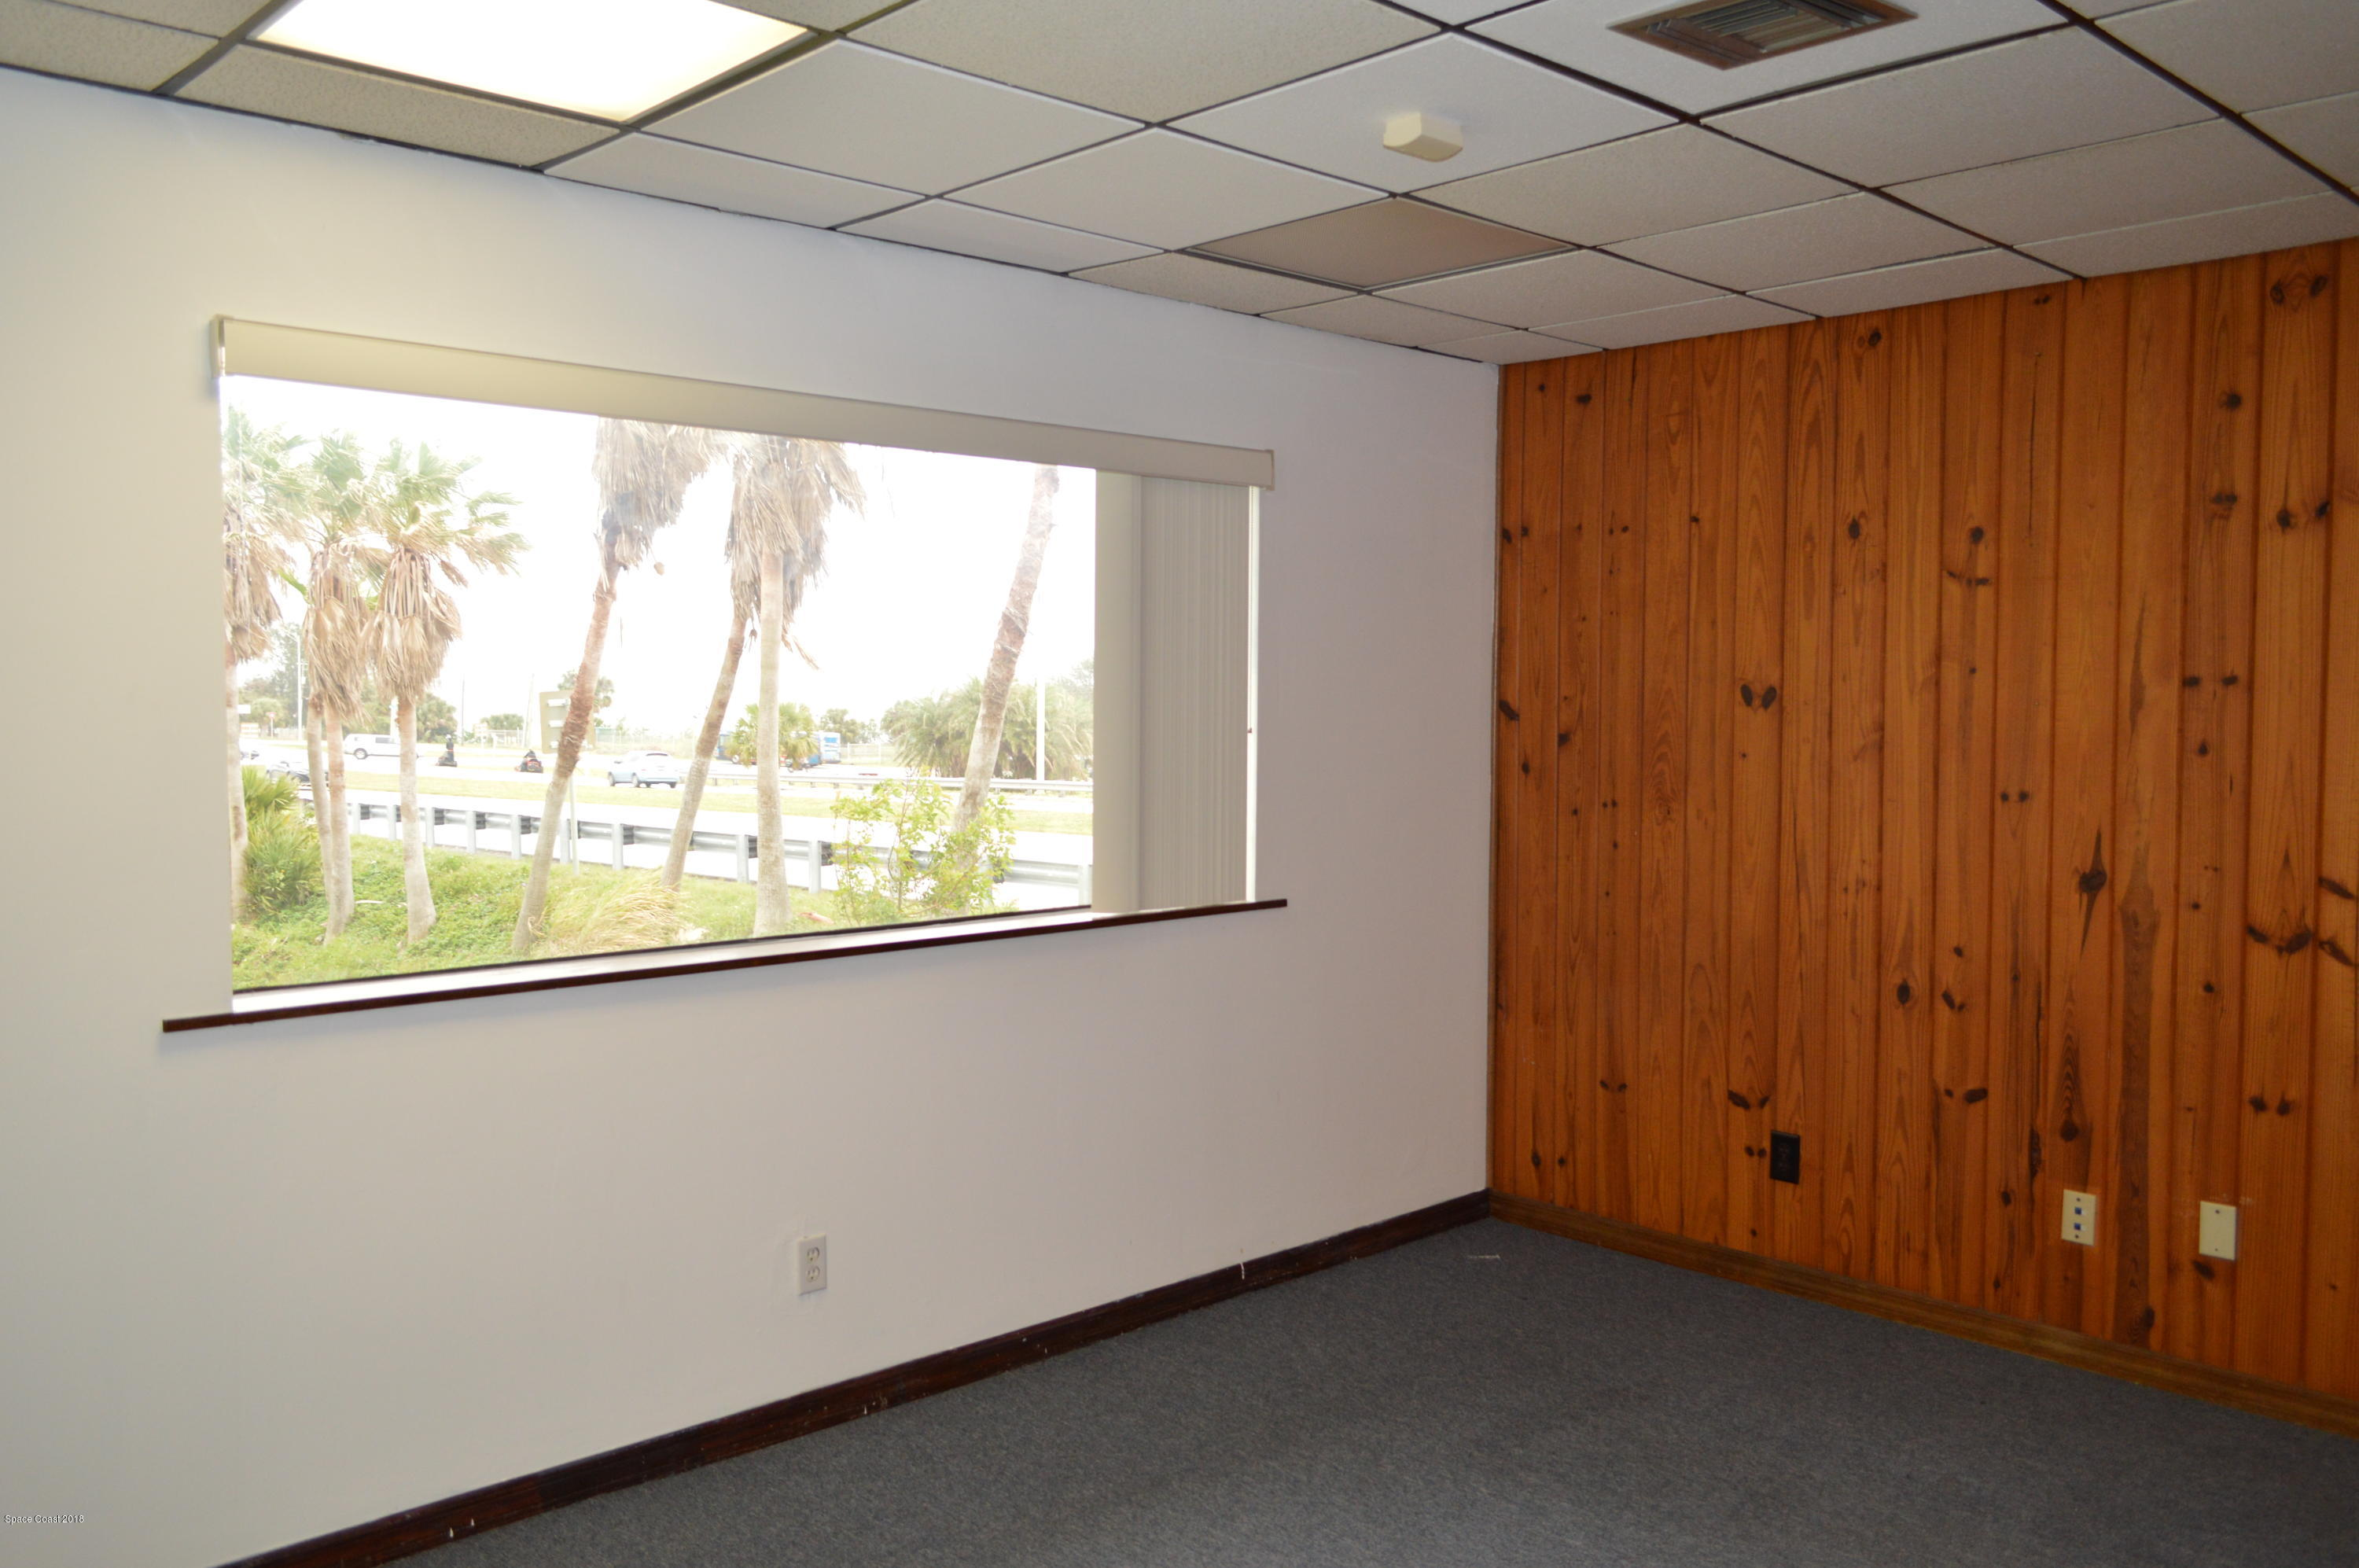 Additional photo for property listing at 1825 Riverview Melbourne, Florida 32901 United States